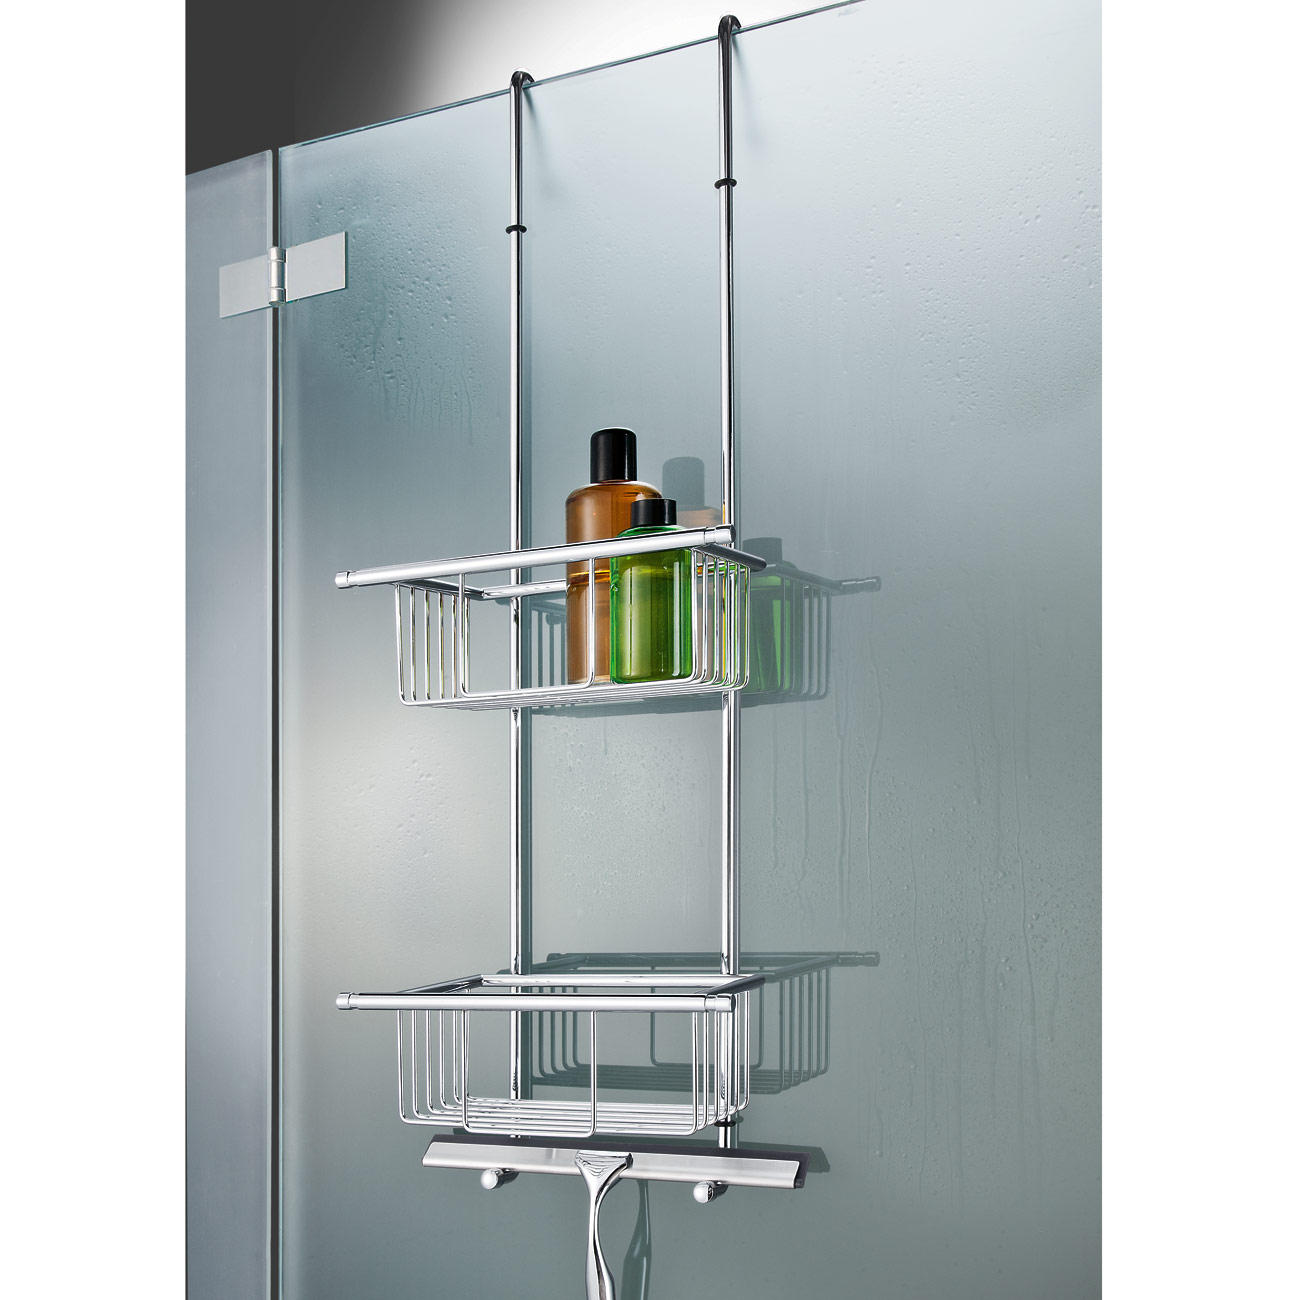 Buy Bath Towel Holder Or Hanging Shower Shelf Online